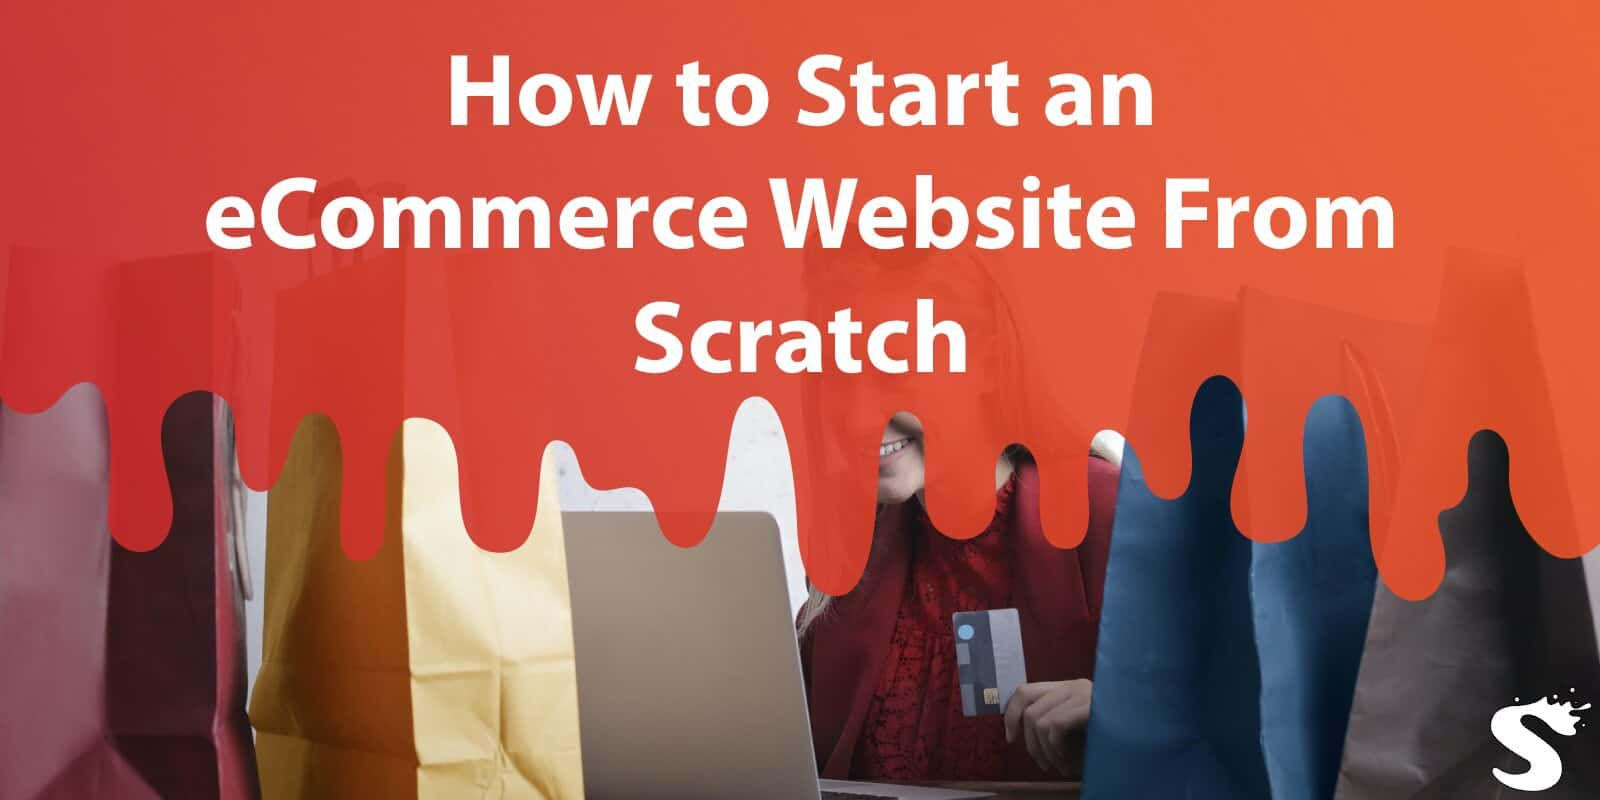 How to Start an Ecommerce Website From Scratch